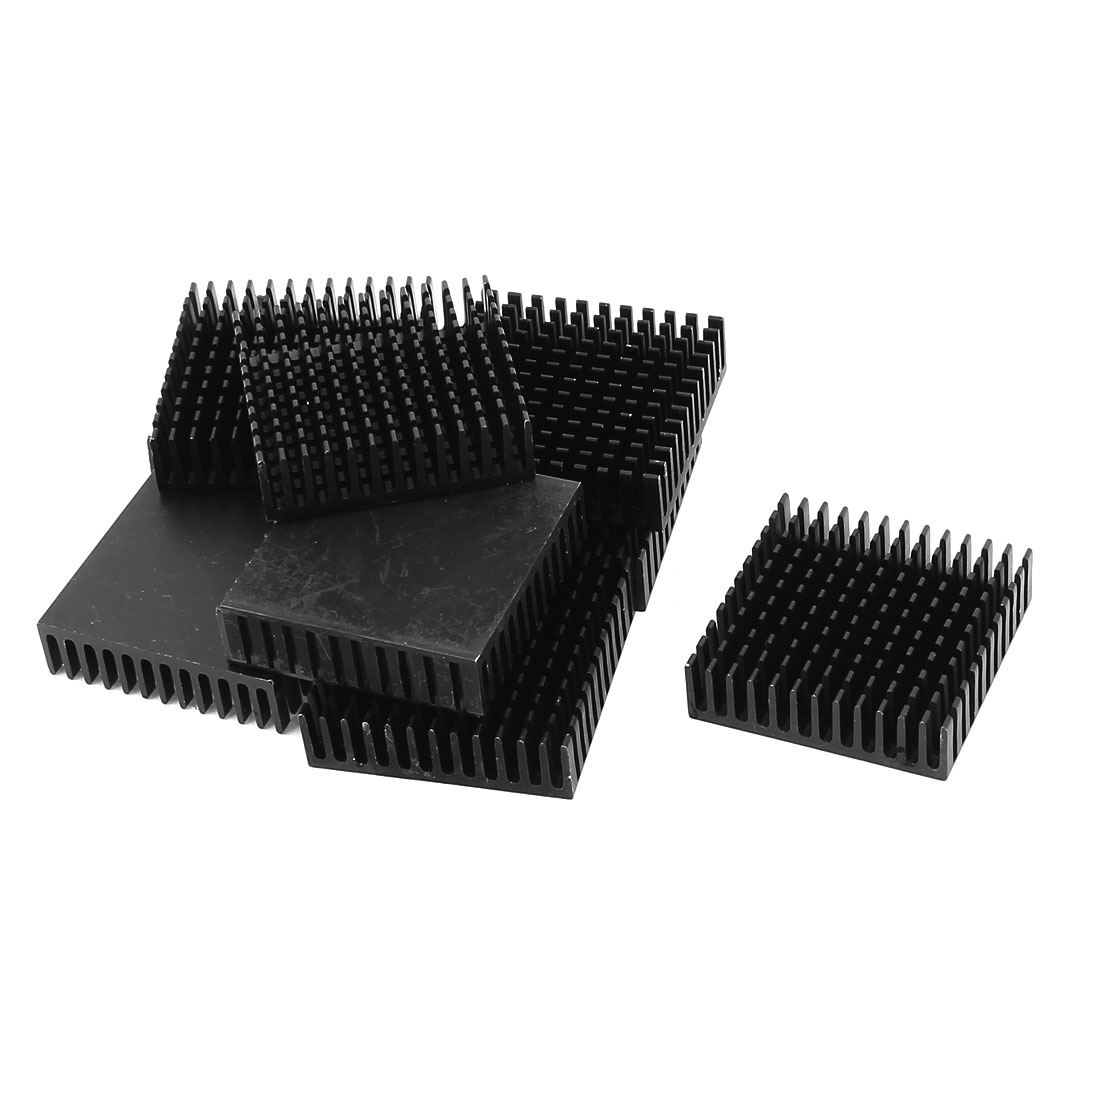 10 Pcs Aluminium 40 x 40 x 11mm Square Heatsink Cooling Cooler Fin Black